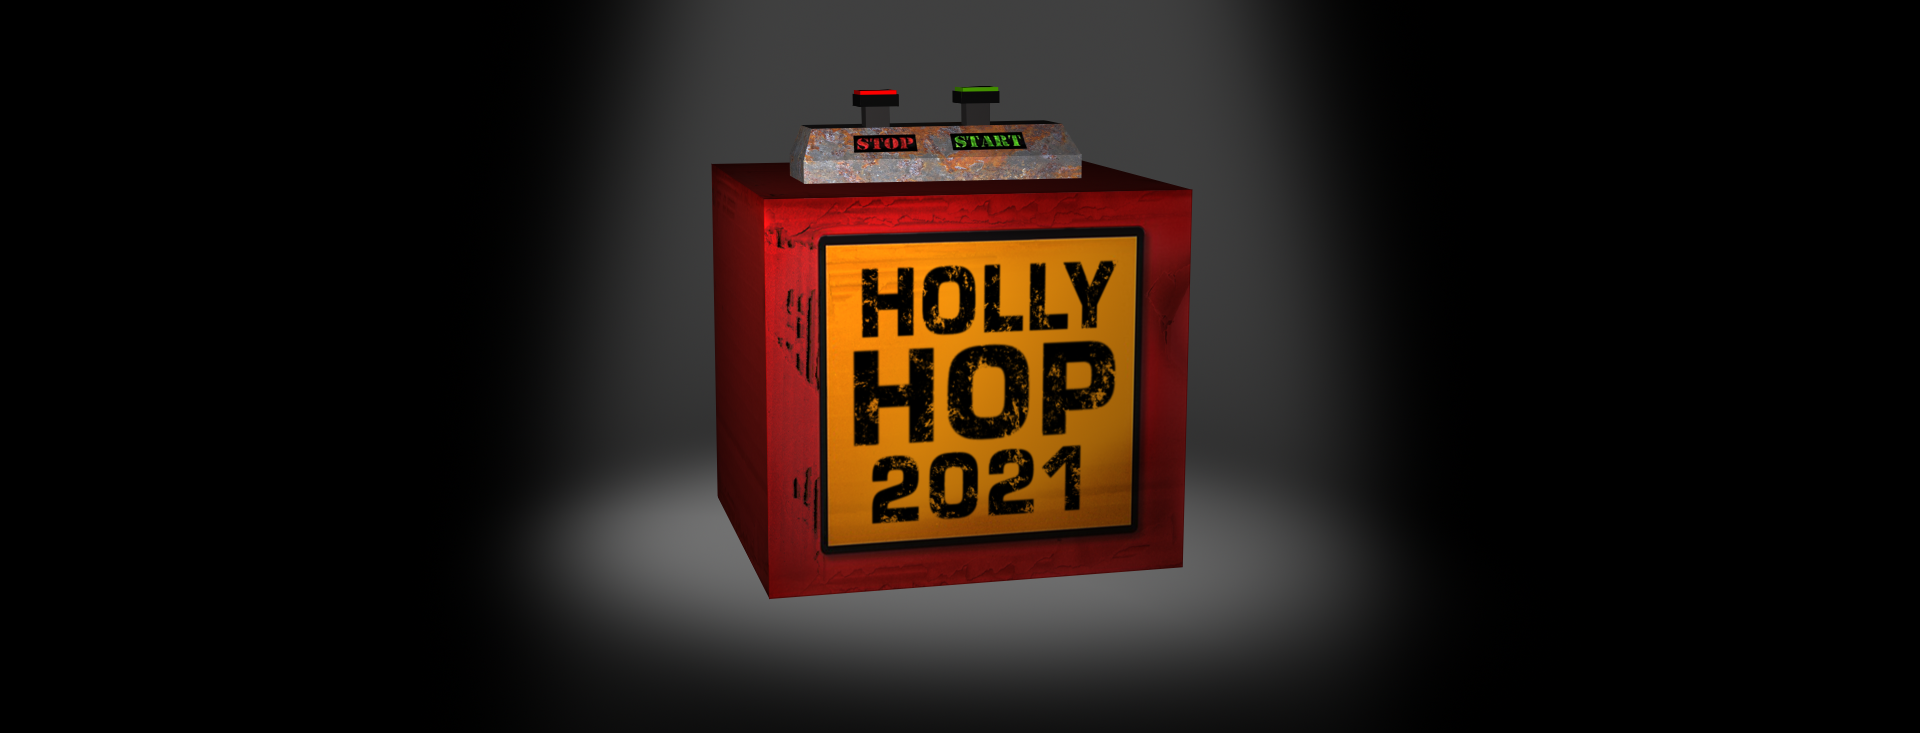 Holly Hop 2021